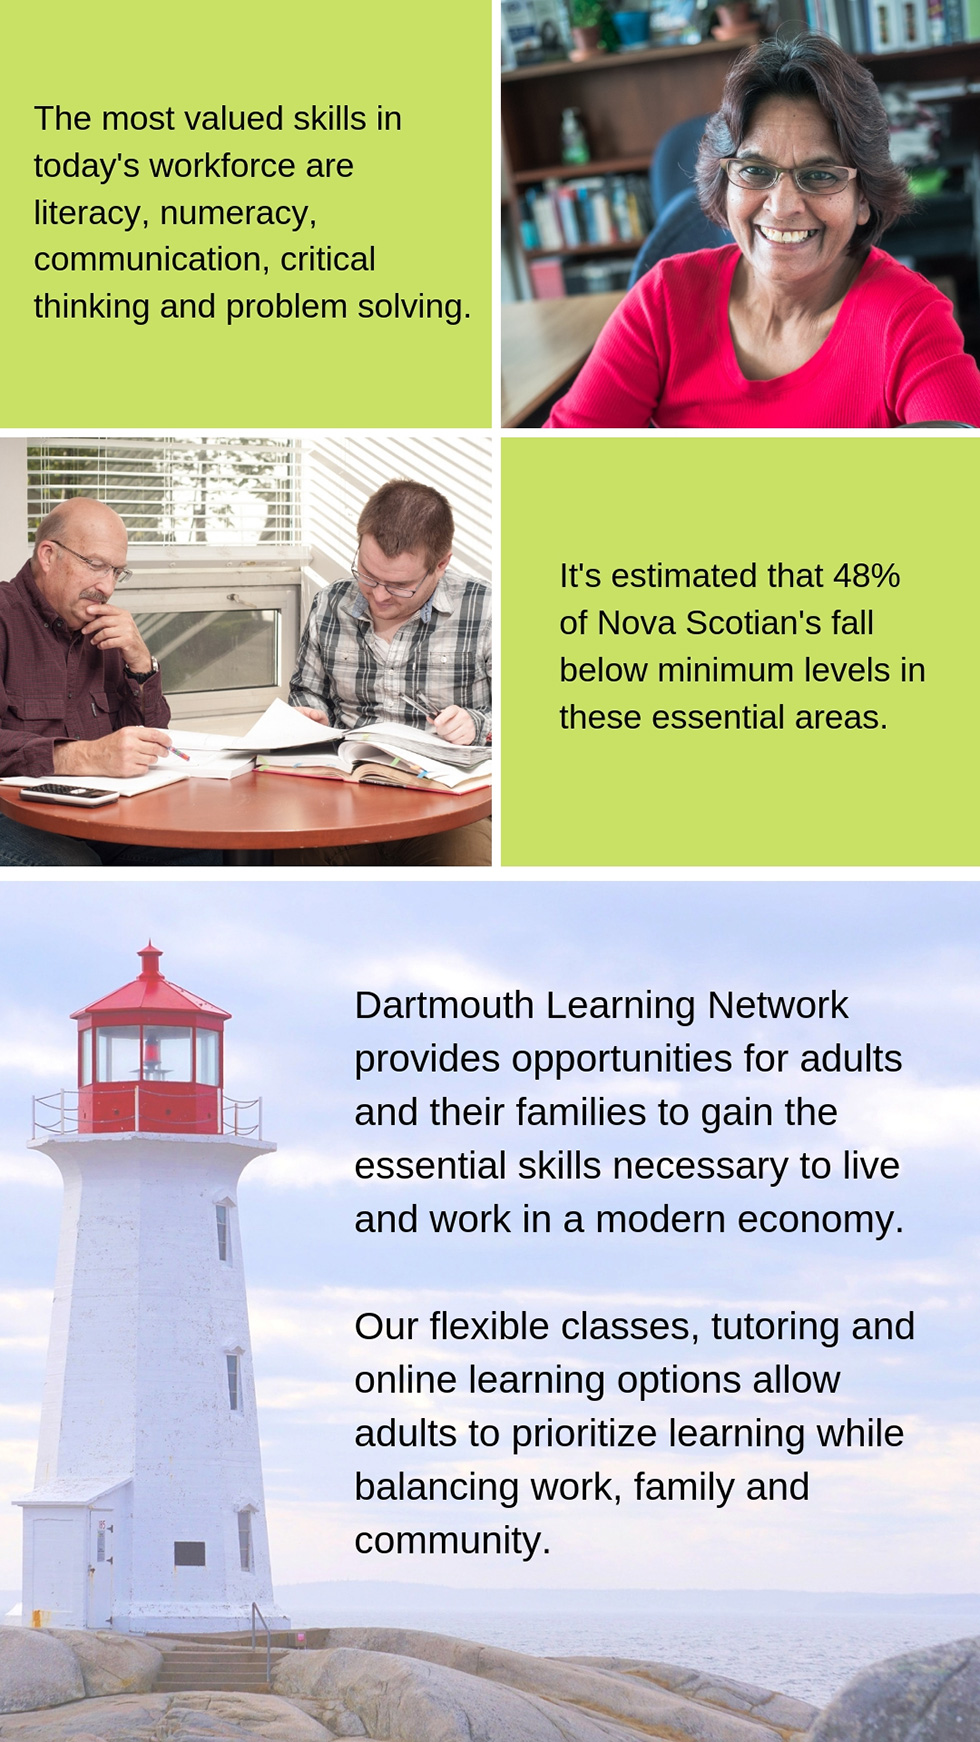 dartmouth-learning-network-classes-and-opportunities